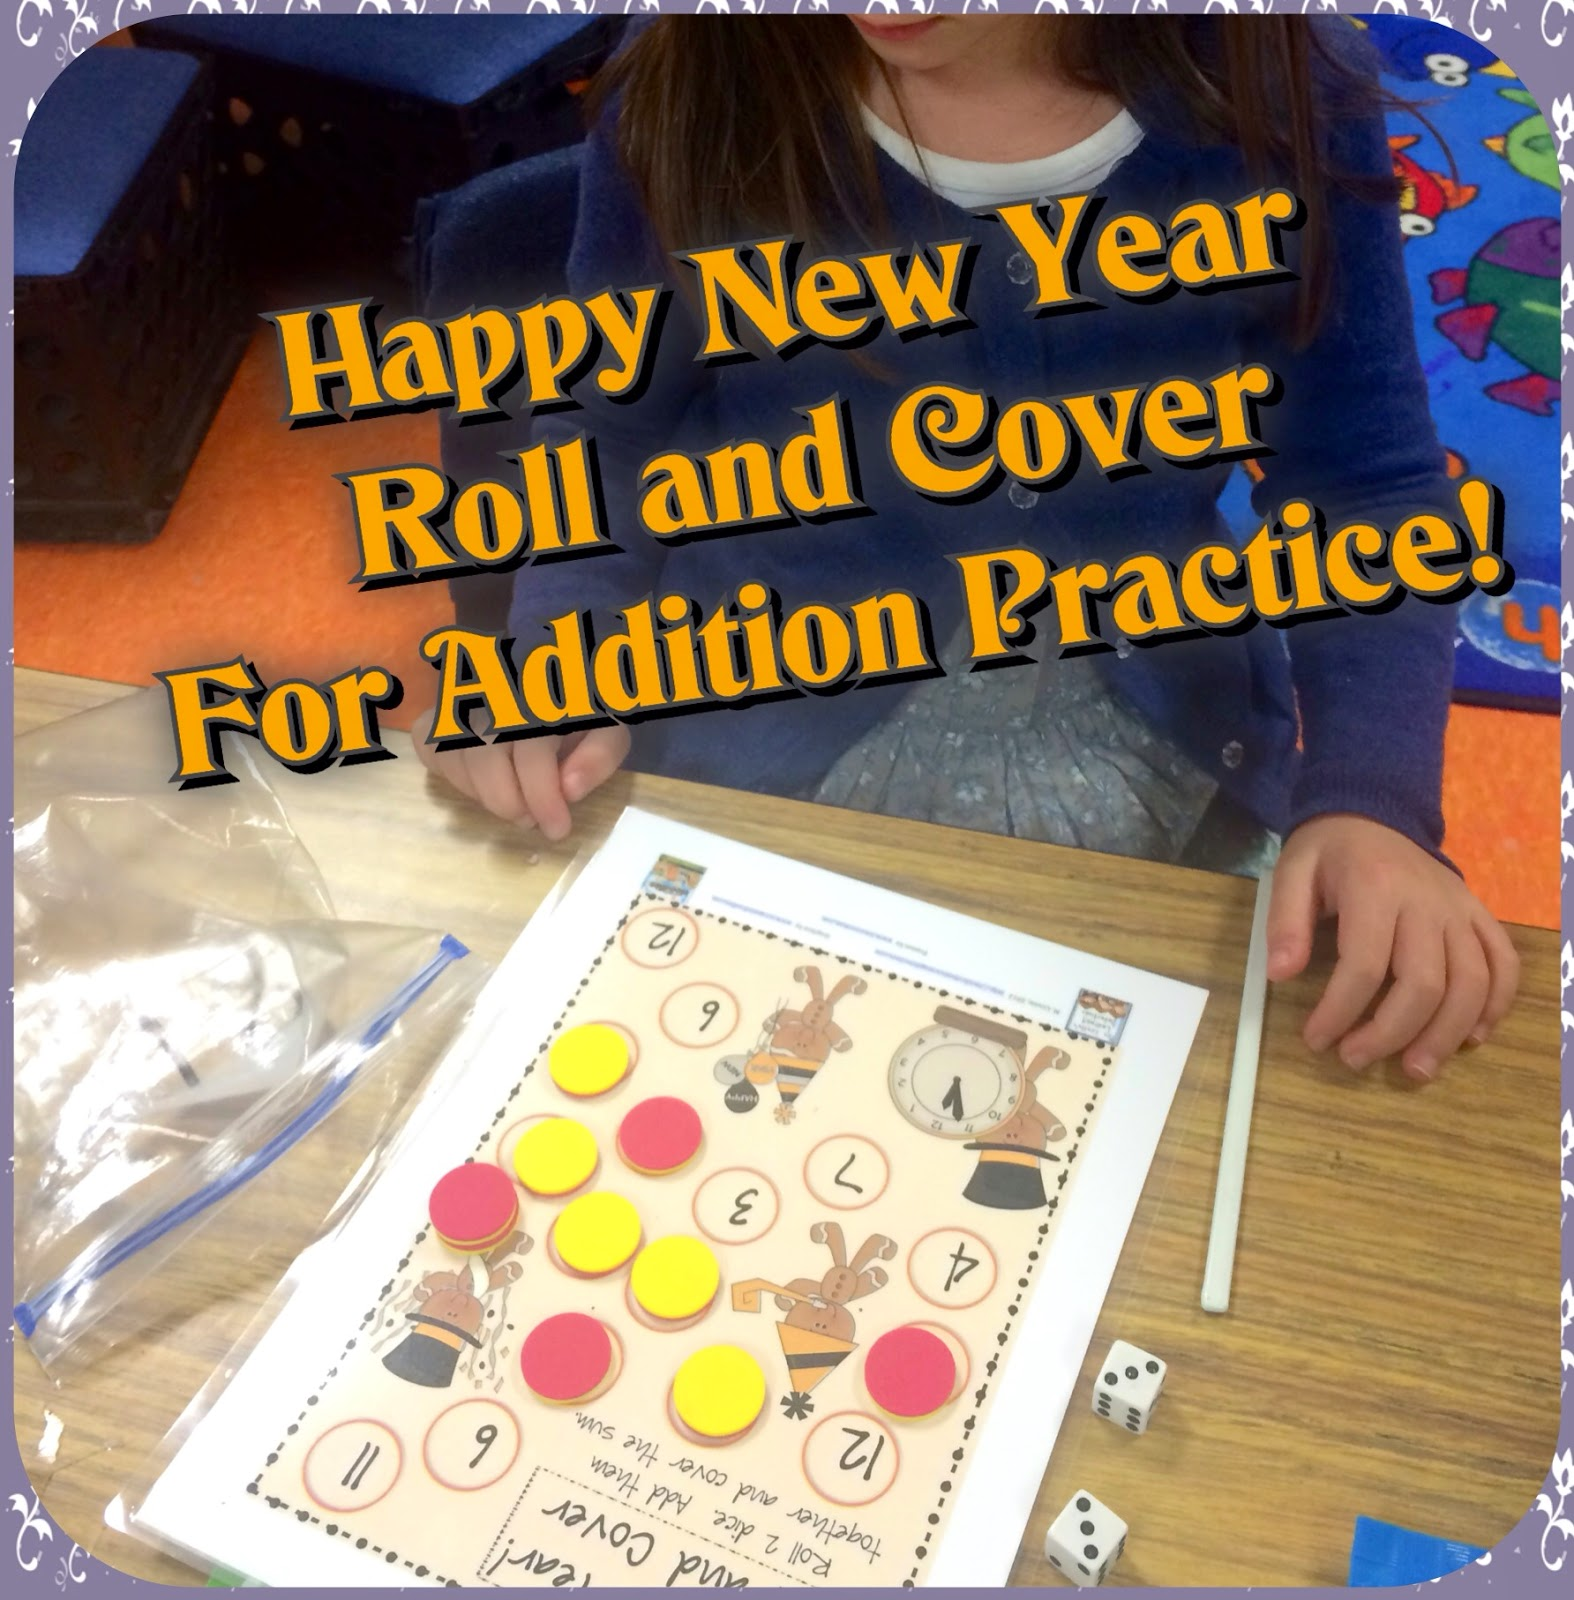 http://www.teacherspayteachers.com/Product/New-Year-Roll-and-Cover-FREEBIES-468638